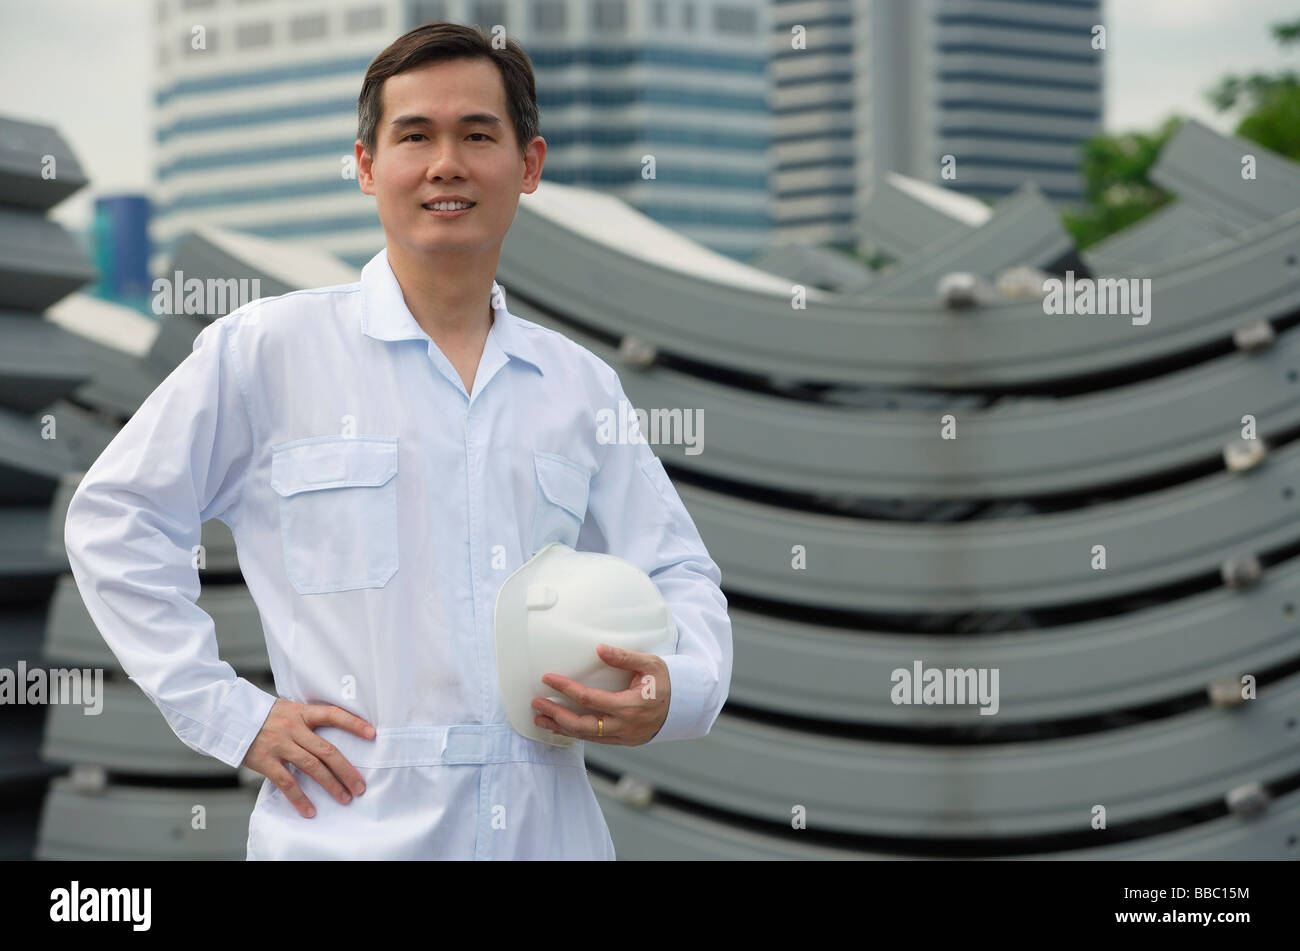 Man with hard helmet looking at camera - Stock Image